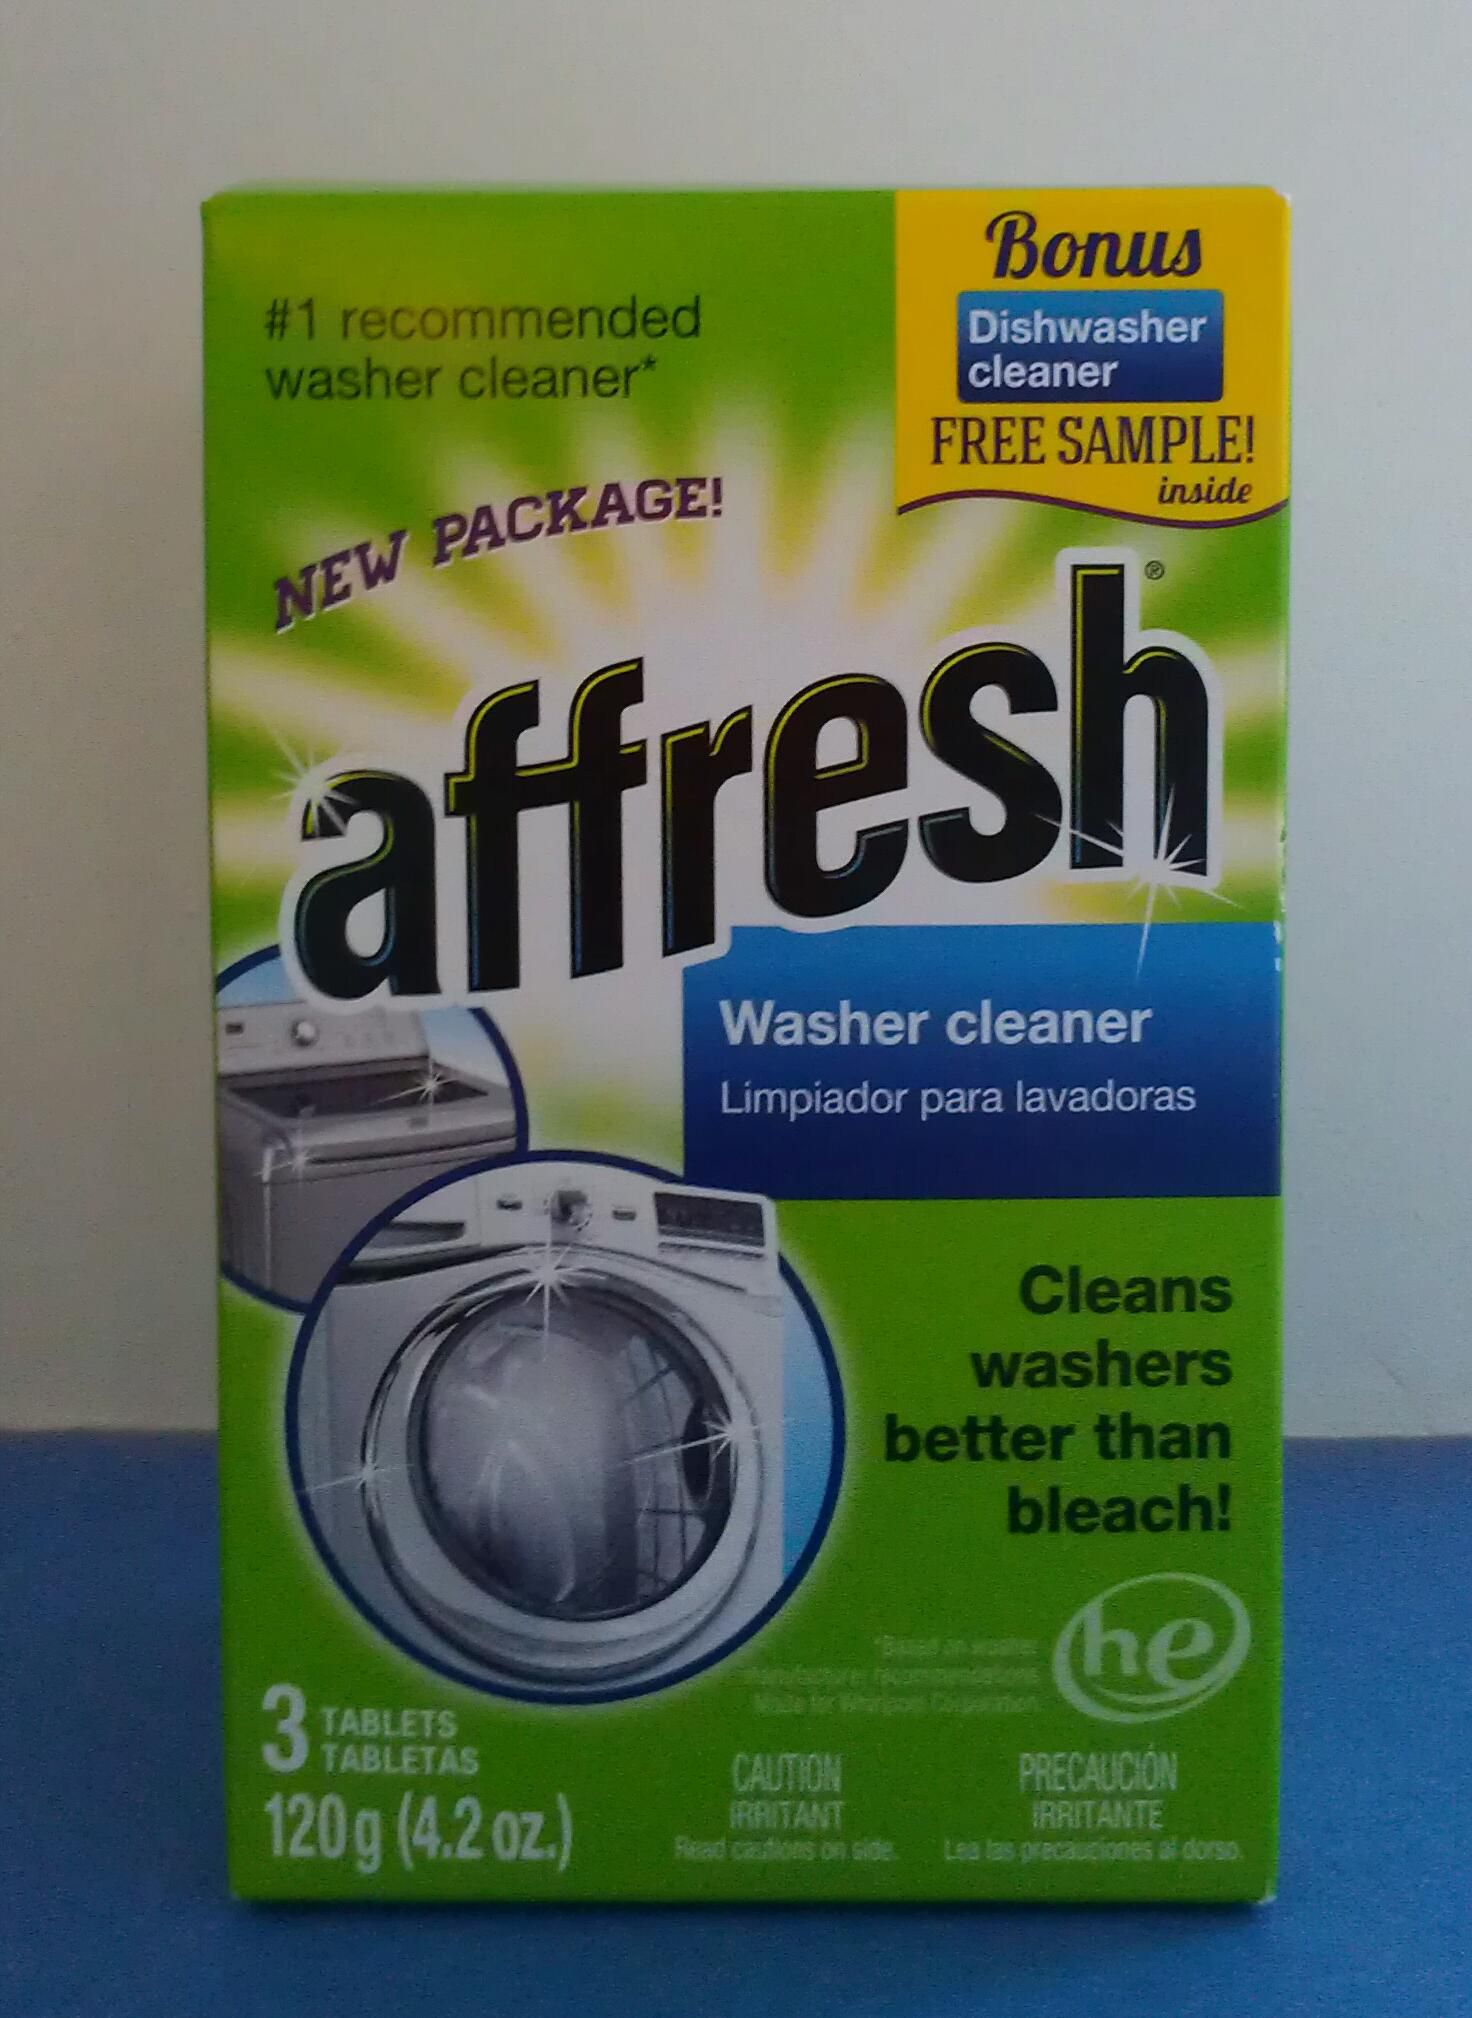 Affresh Walmart Affresh Washer Cleaner Amazon Affresh Dishwasher